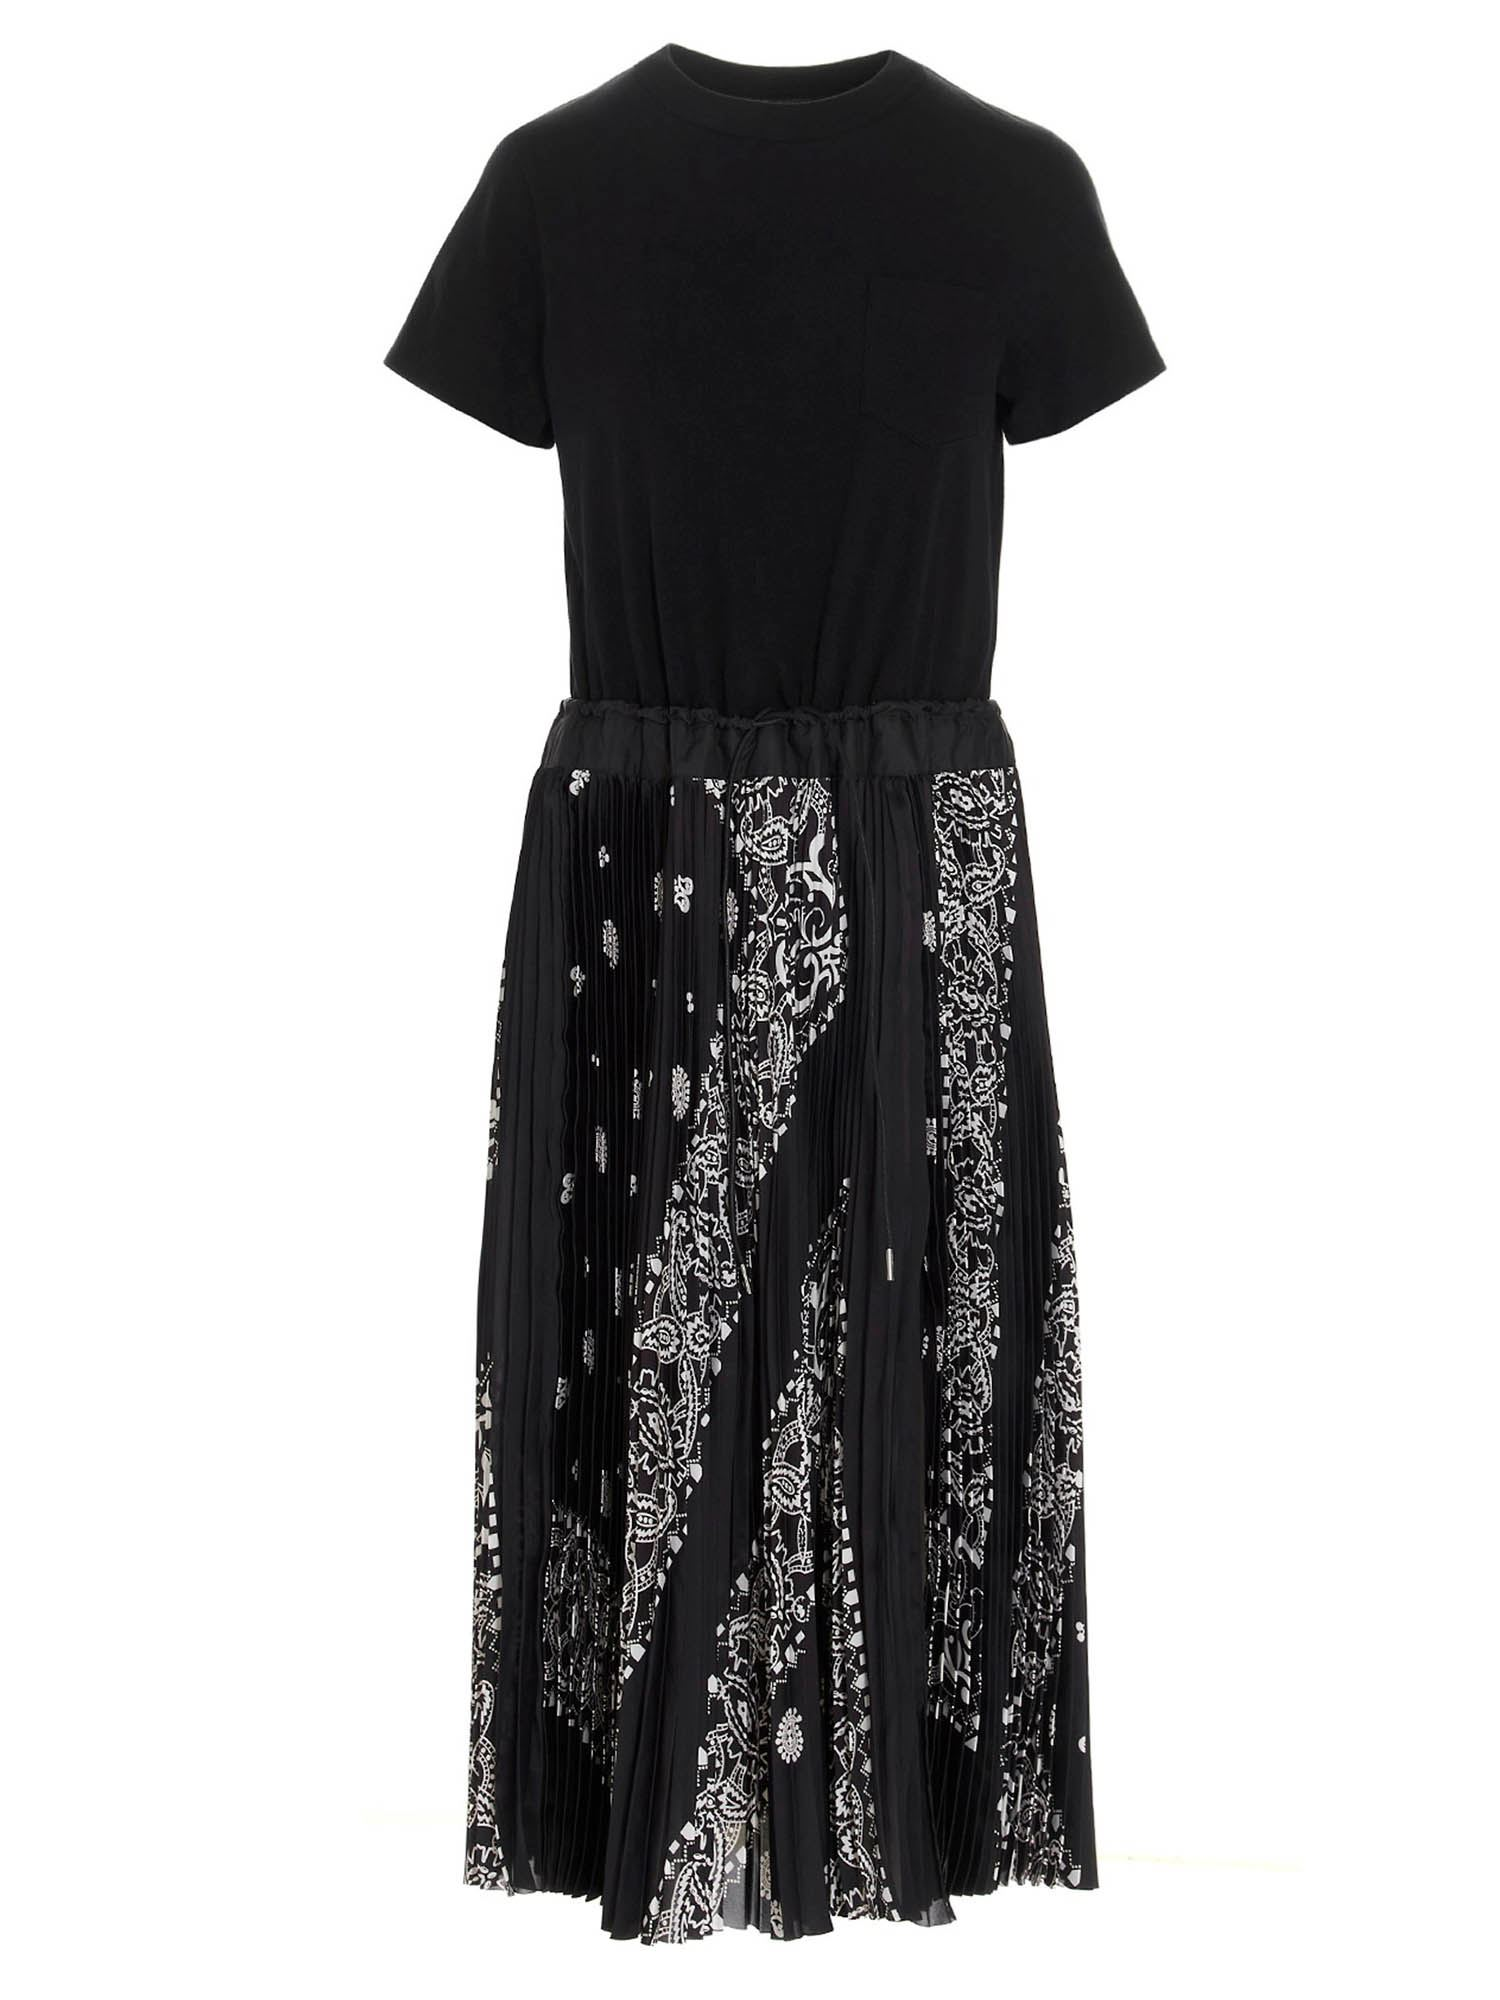 Sacai BANDANA SKIRT DRESS IN BLACK